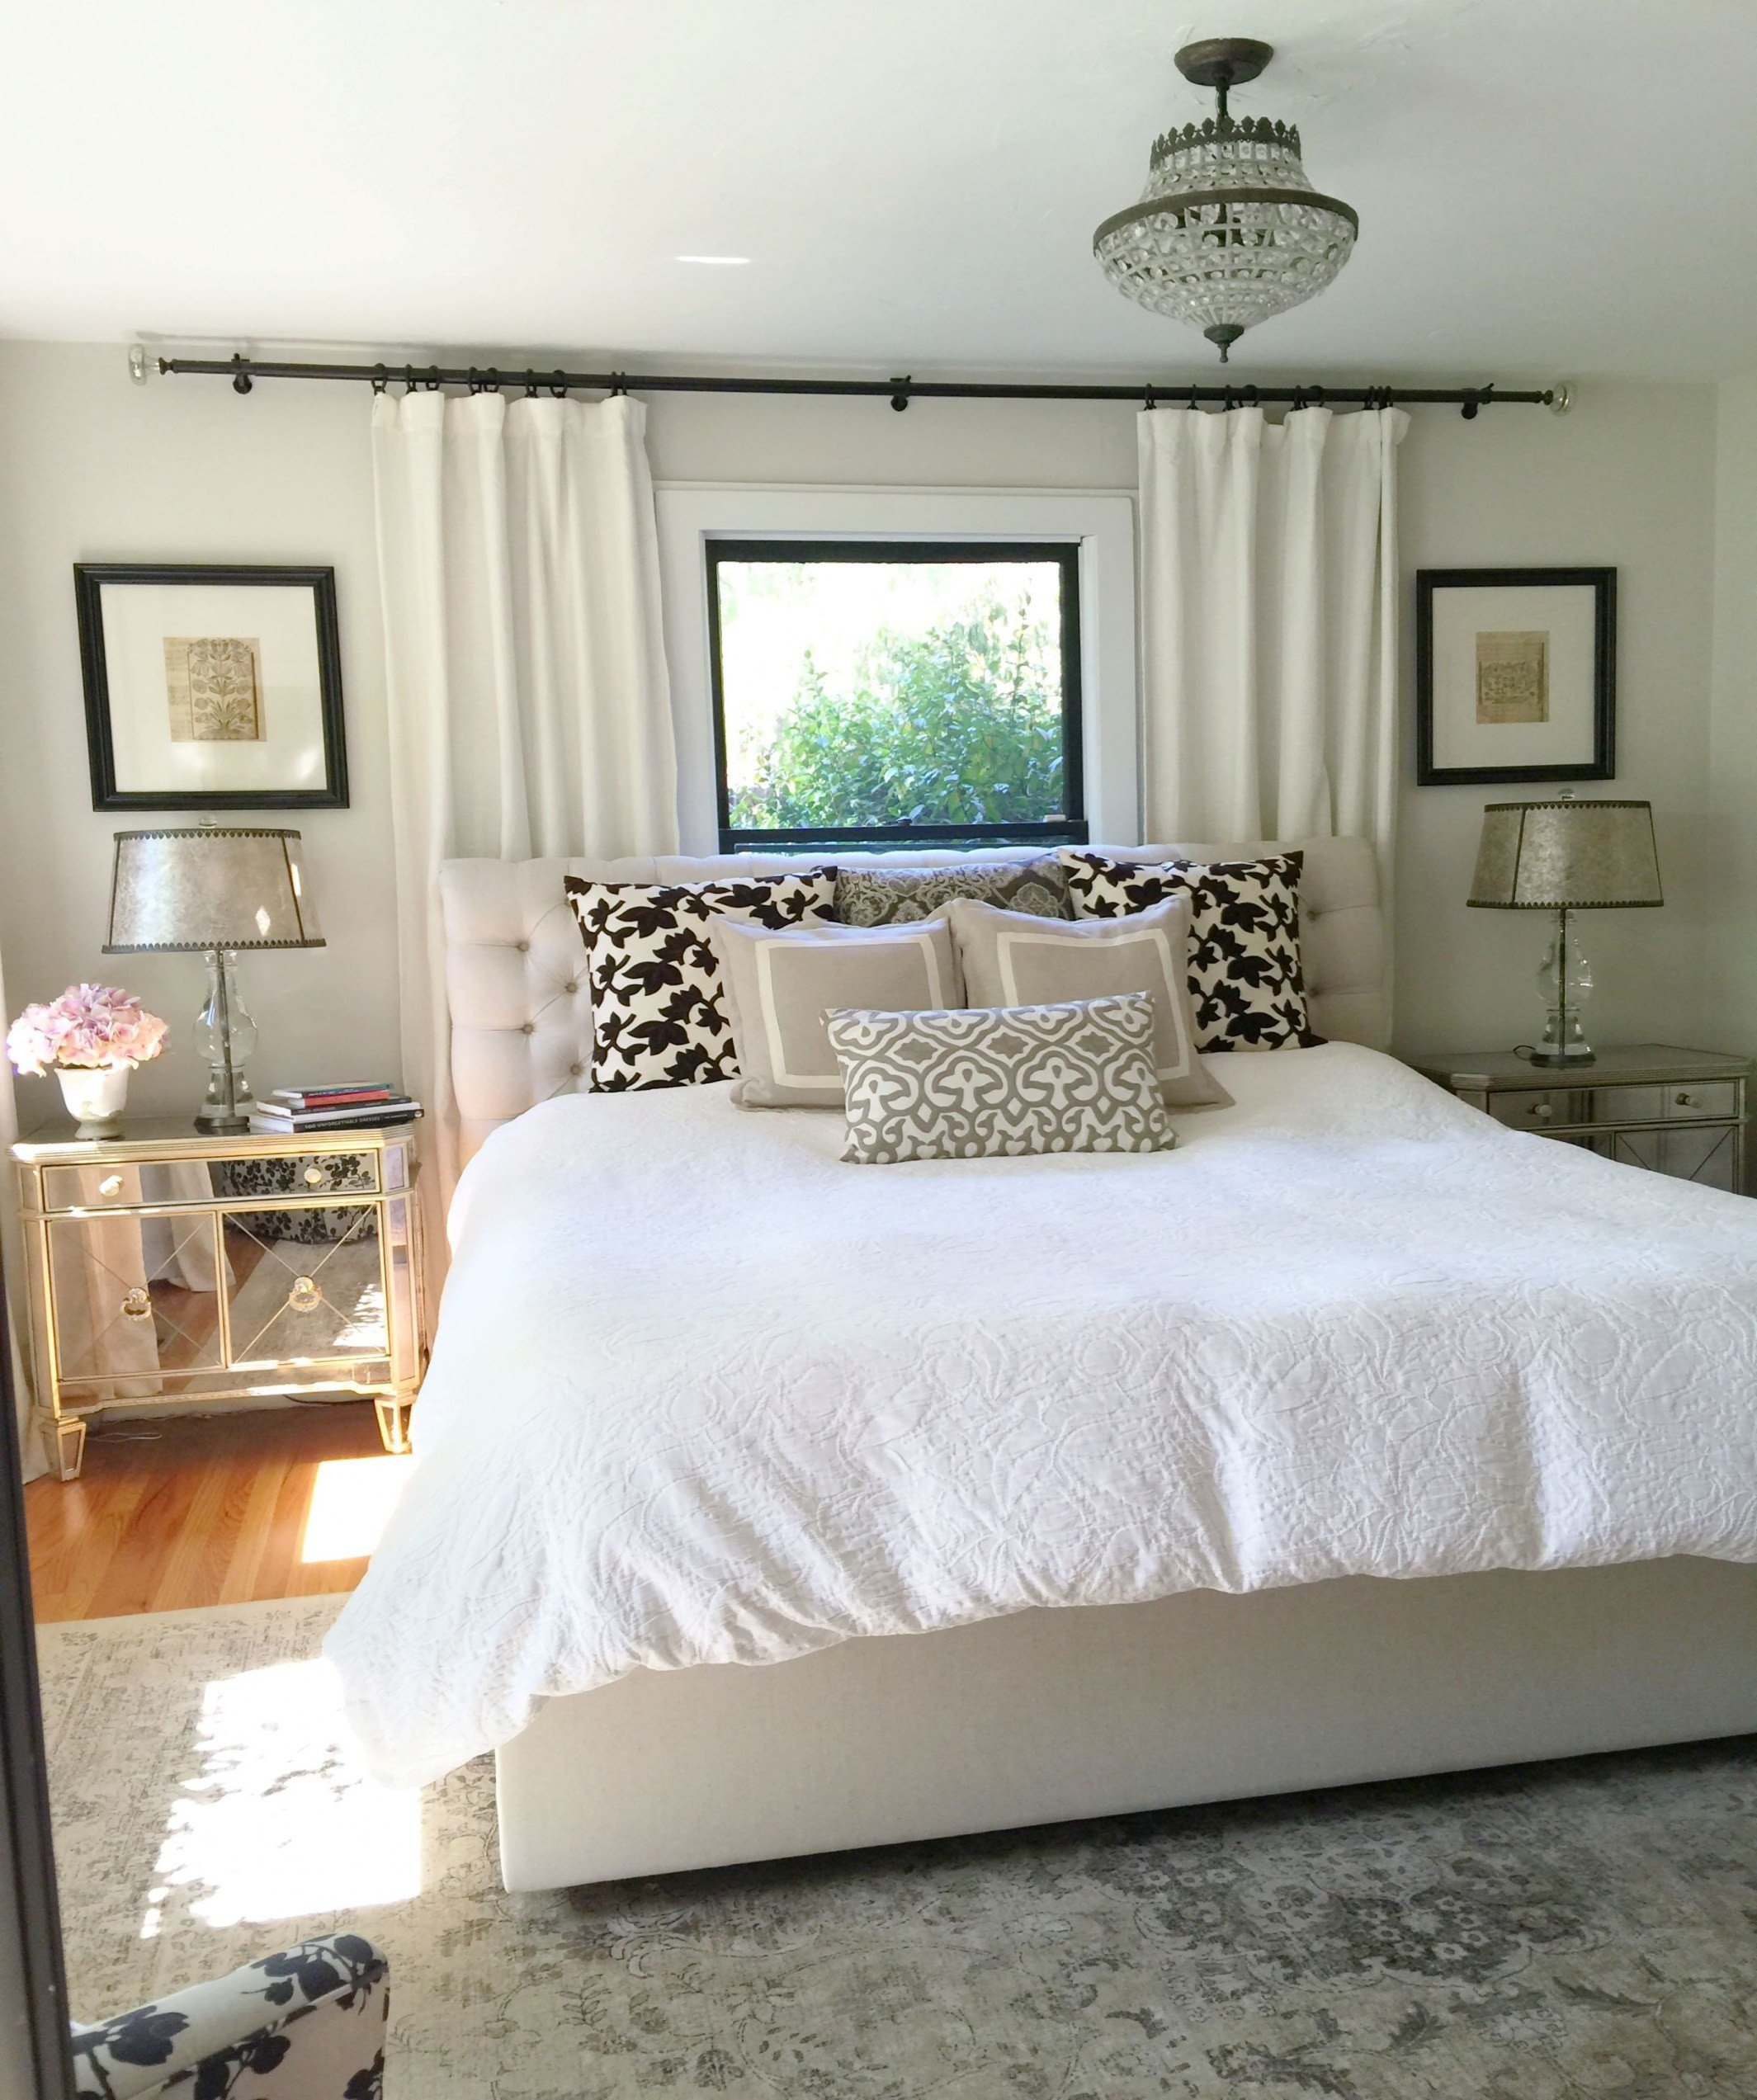 Boy Full Bedroom Set Beautiful Neutral Bedroom Ideas Neutral Bedroom Window Behind Bed